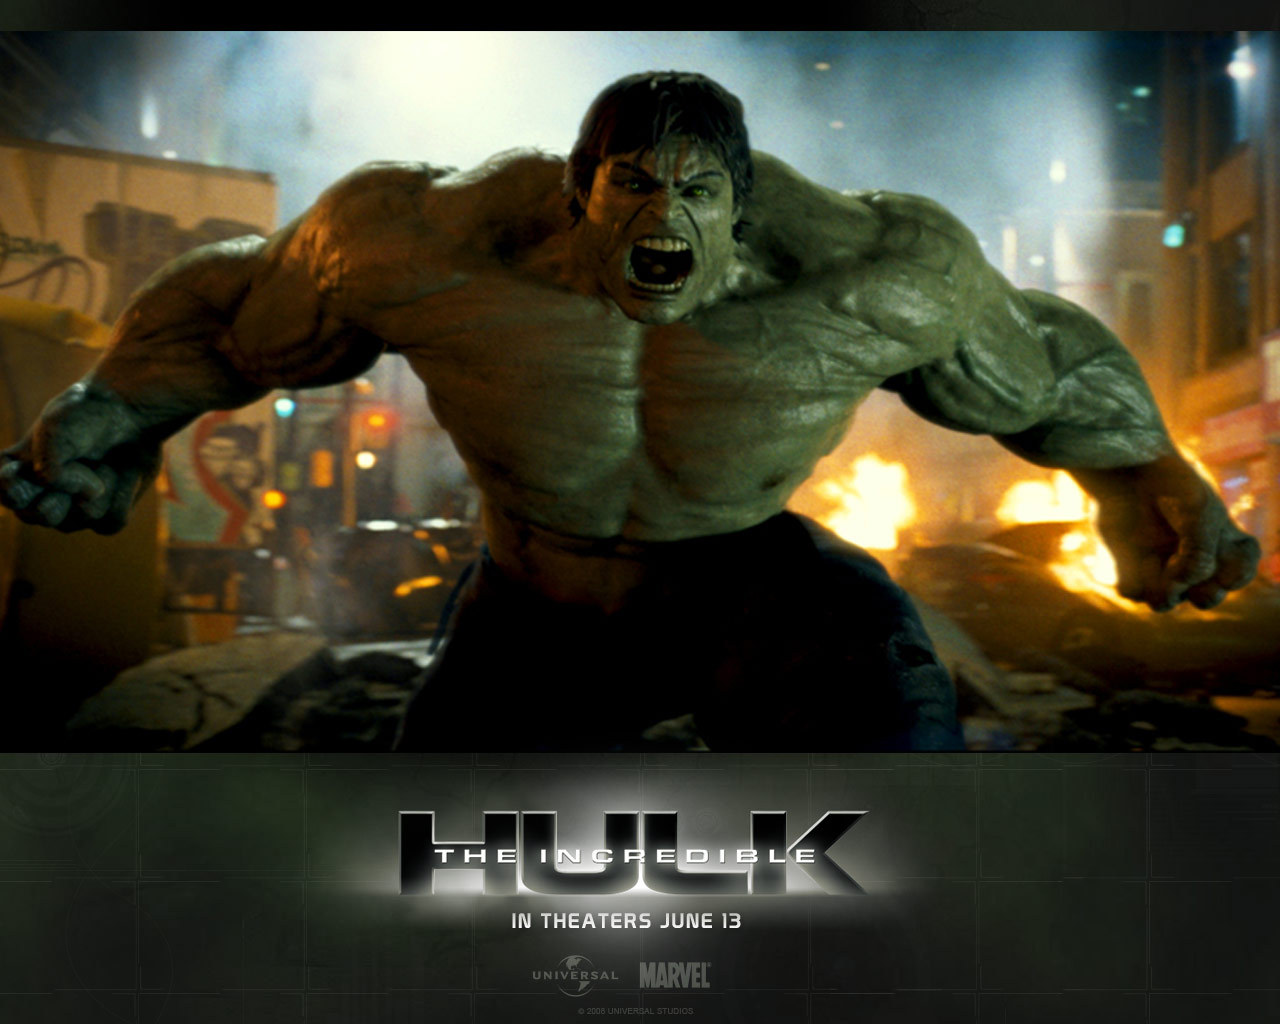 the incredible hulk movies wallpaper 1022562 fanpop